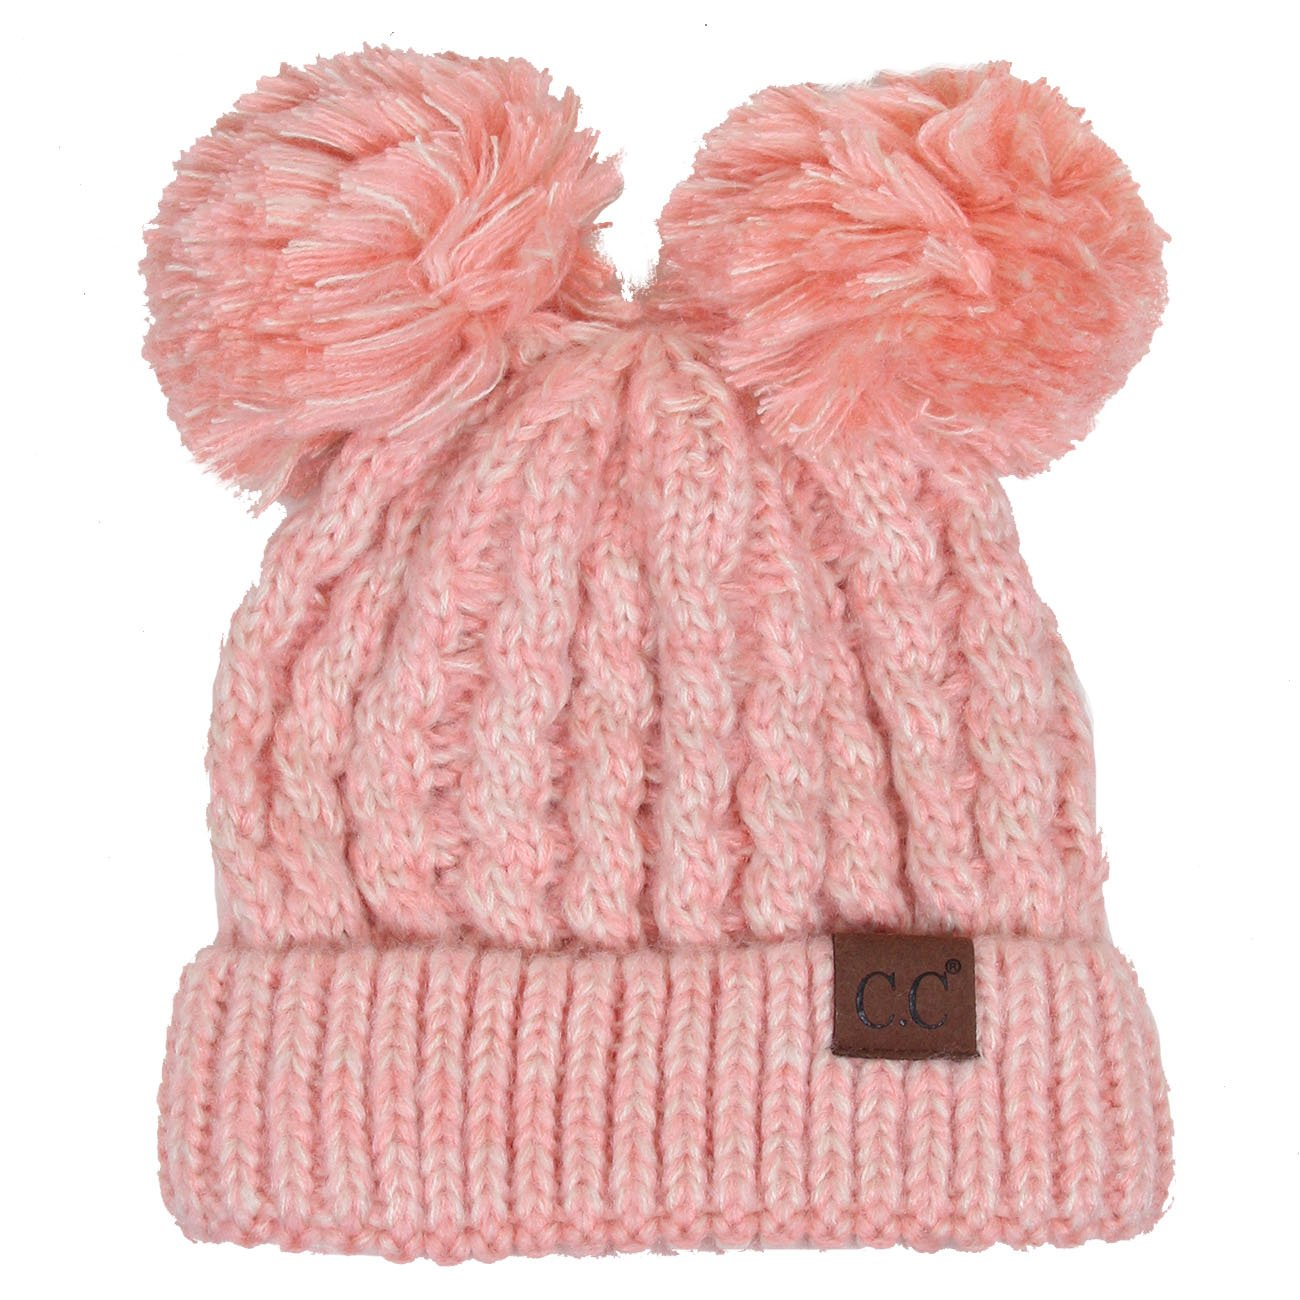 ScarvesMe CC Women Ribbed Knitted Double Pom Pom Beanie Hat (2 Tone Rose)